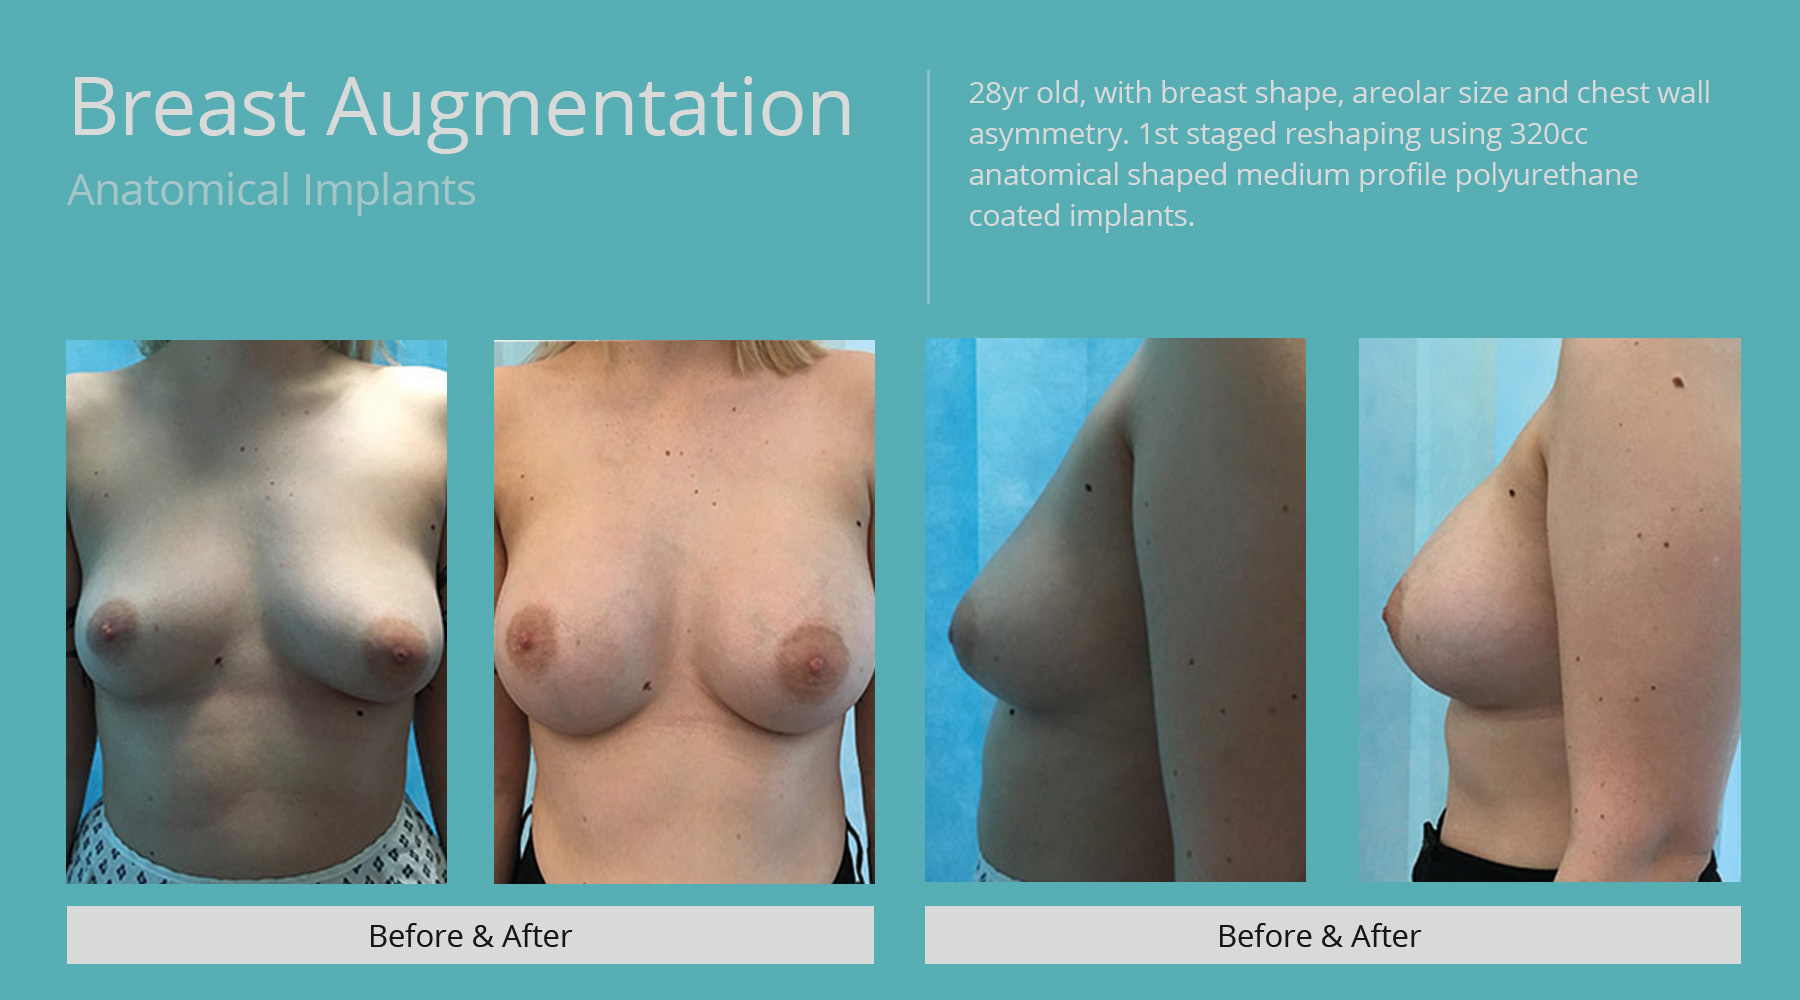 Breast-Augmentation-anatomical-25